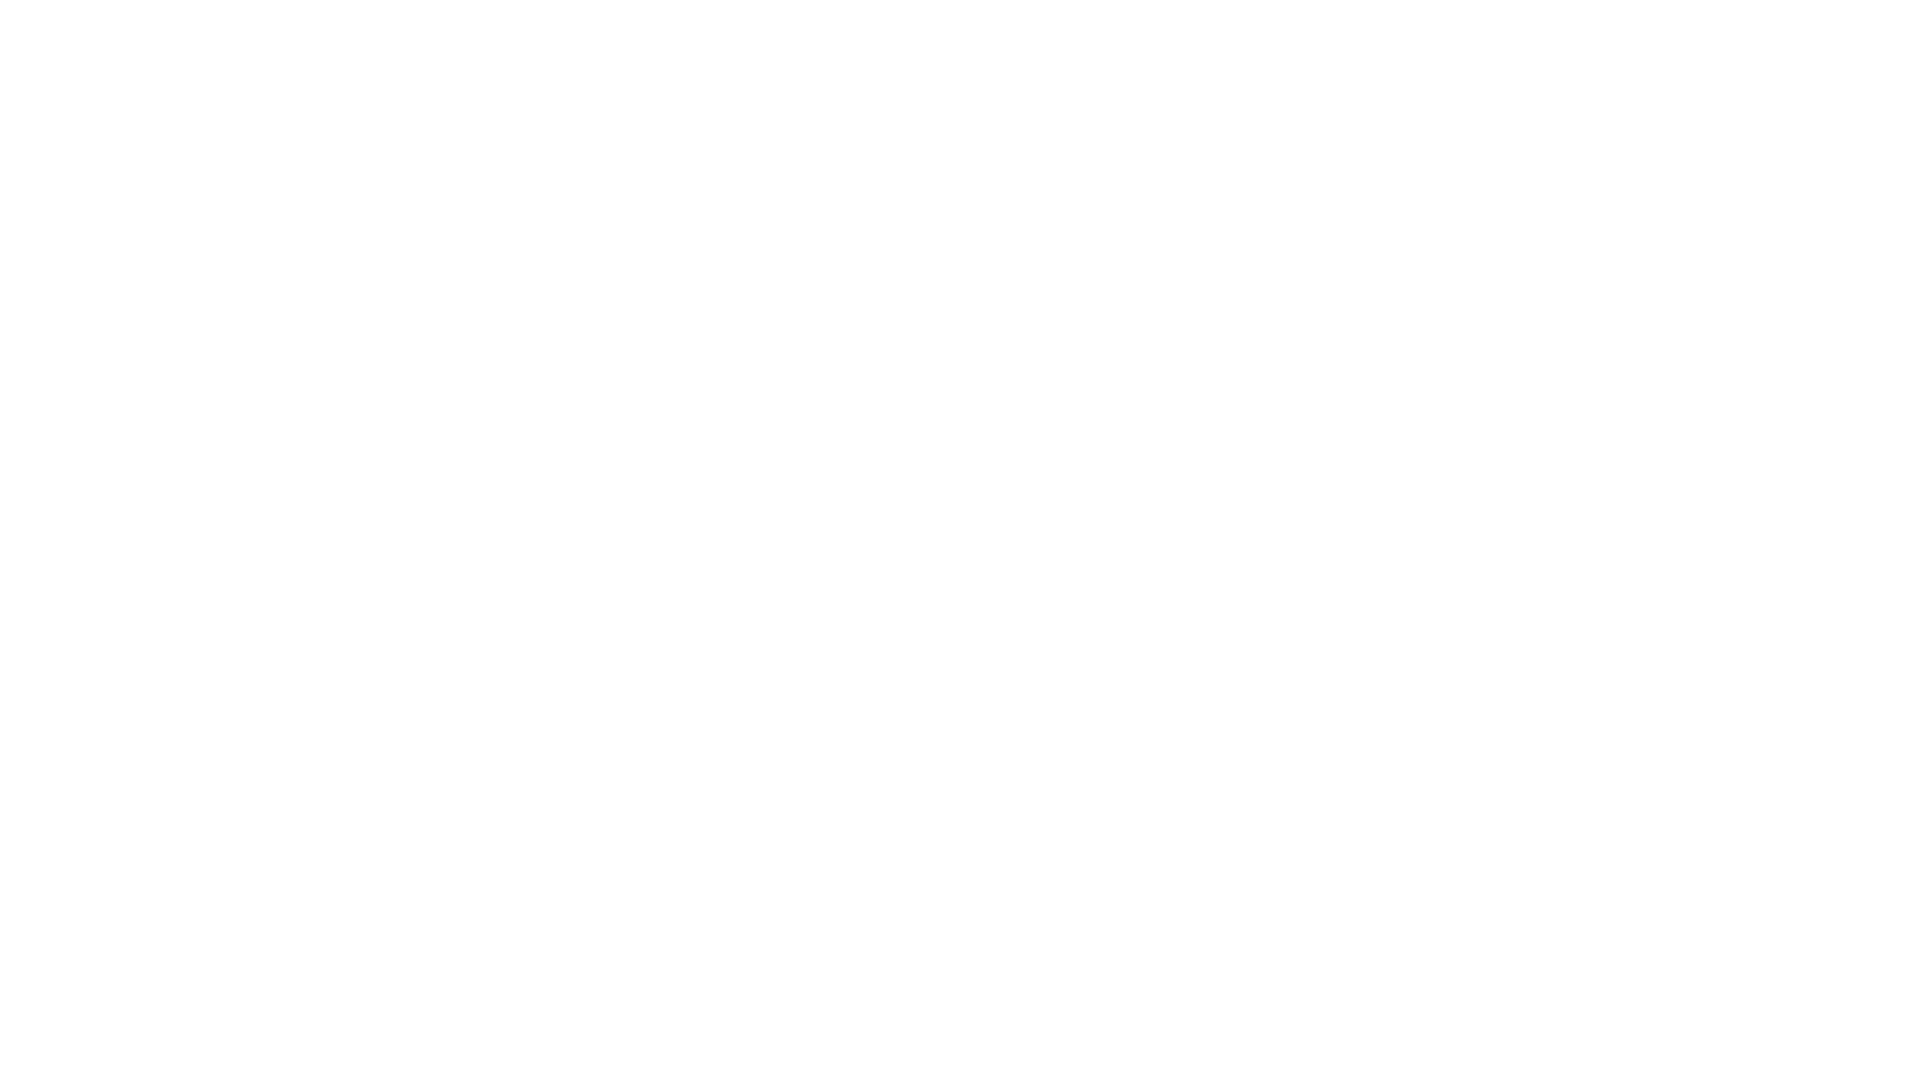 Profil Canal Zoom Canal Tv